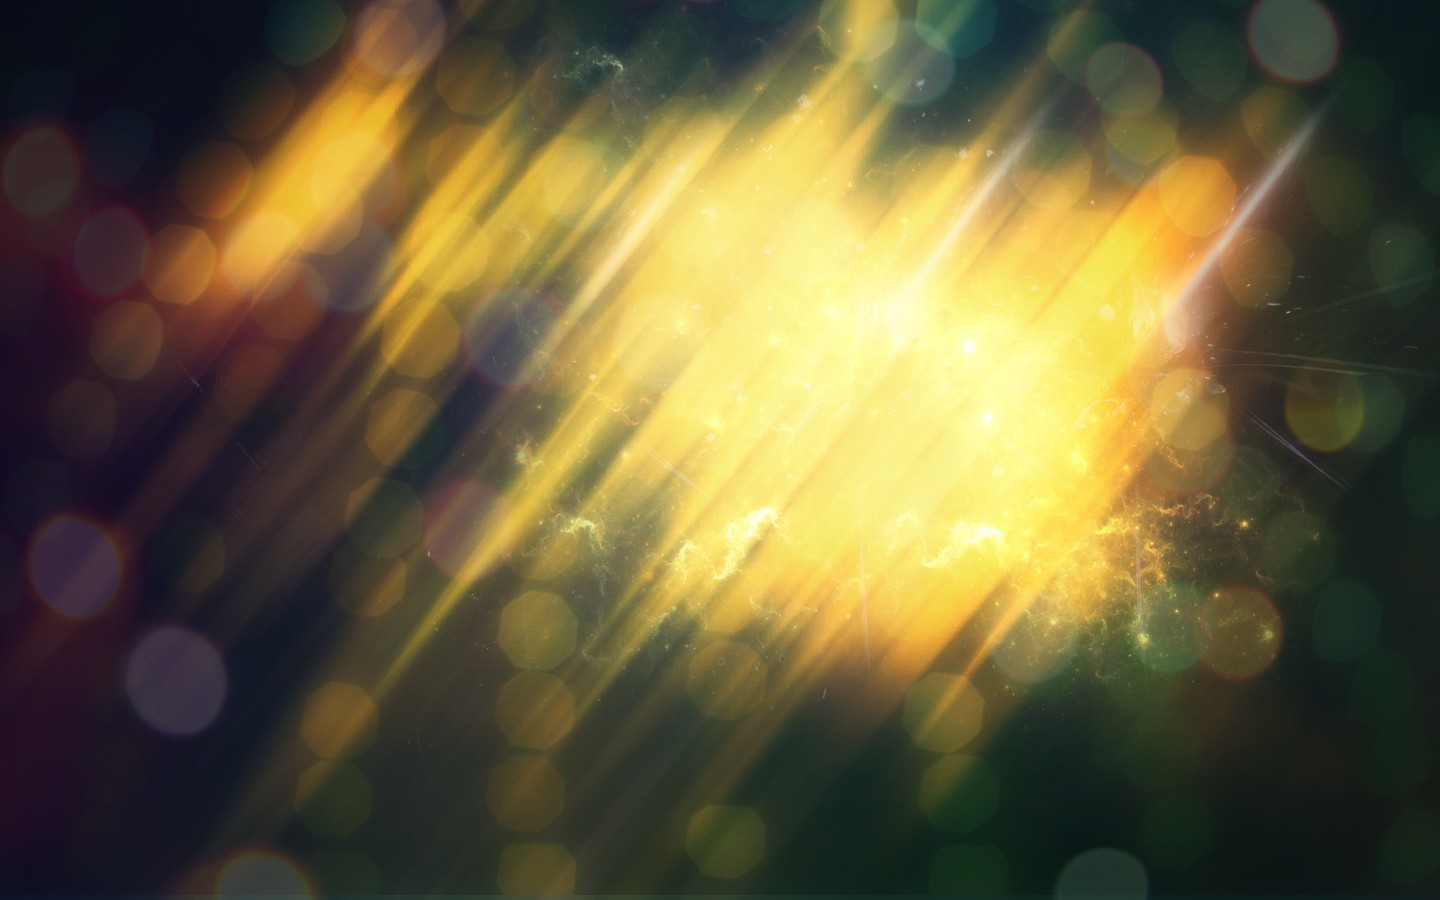 lights MacBook air galaxy HD Wallpaper